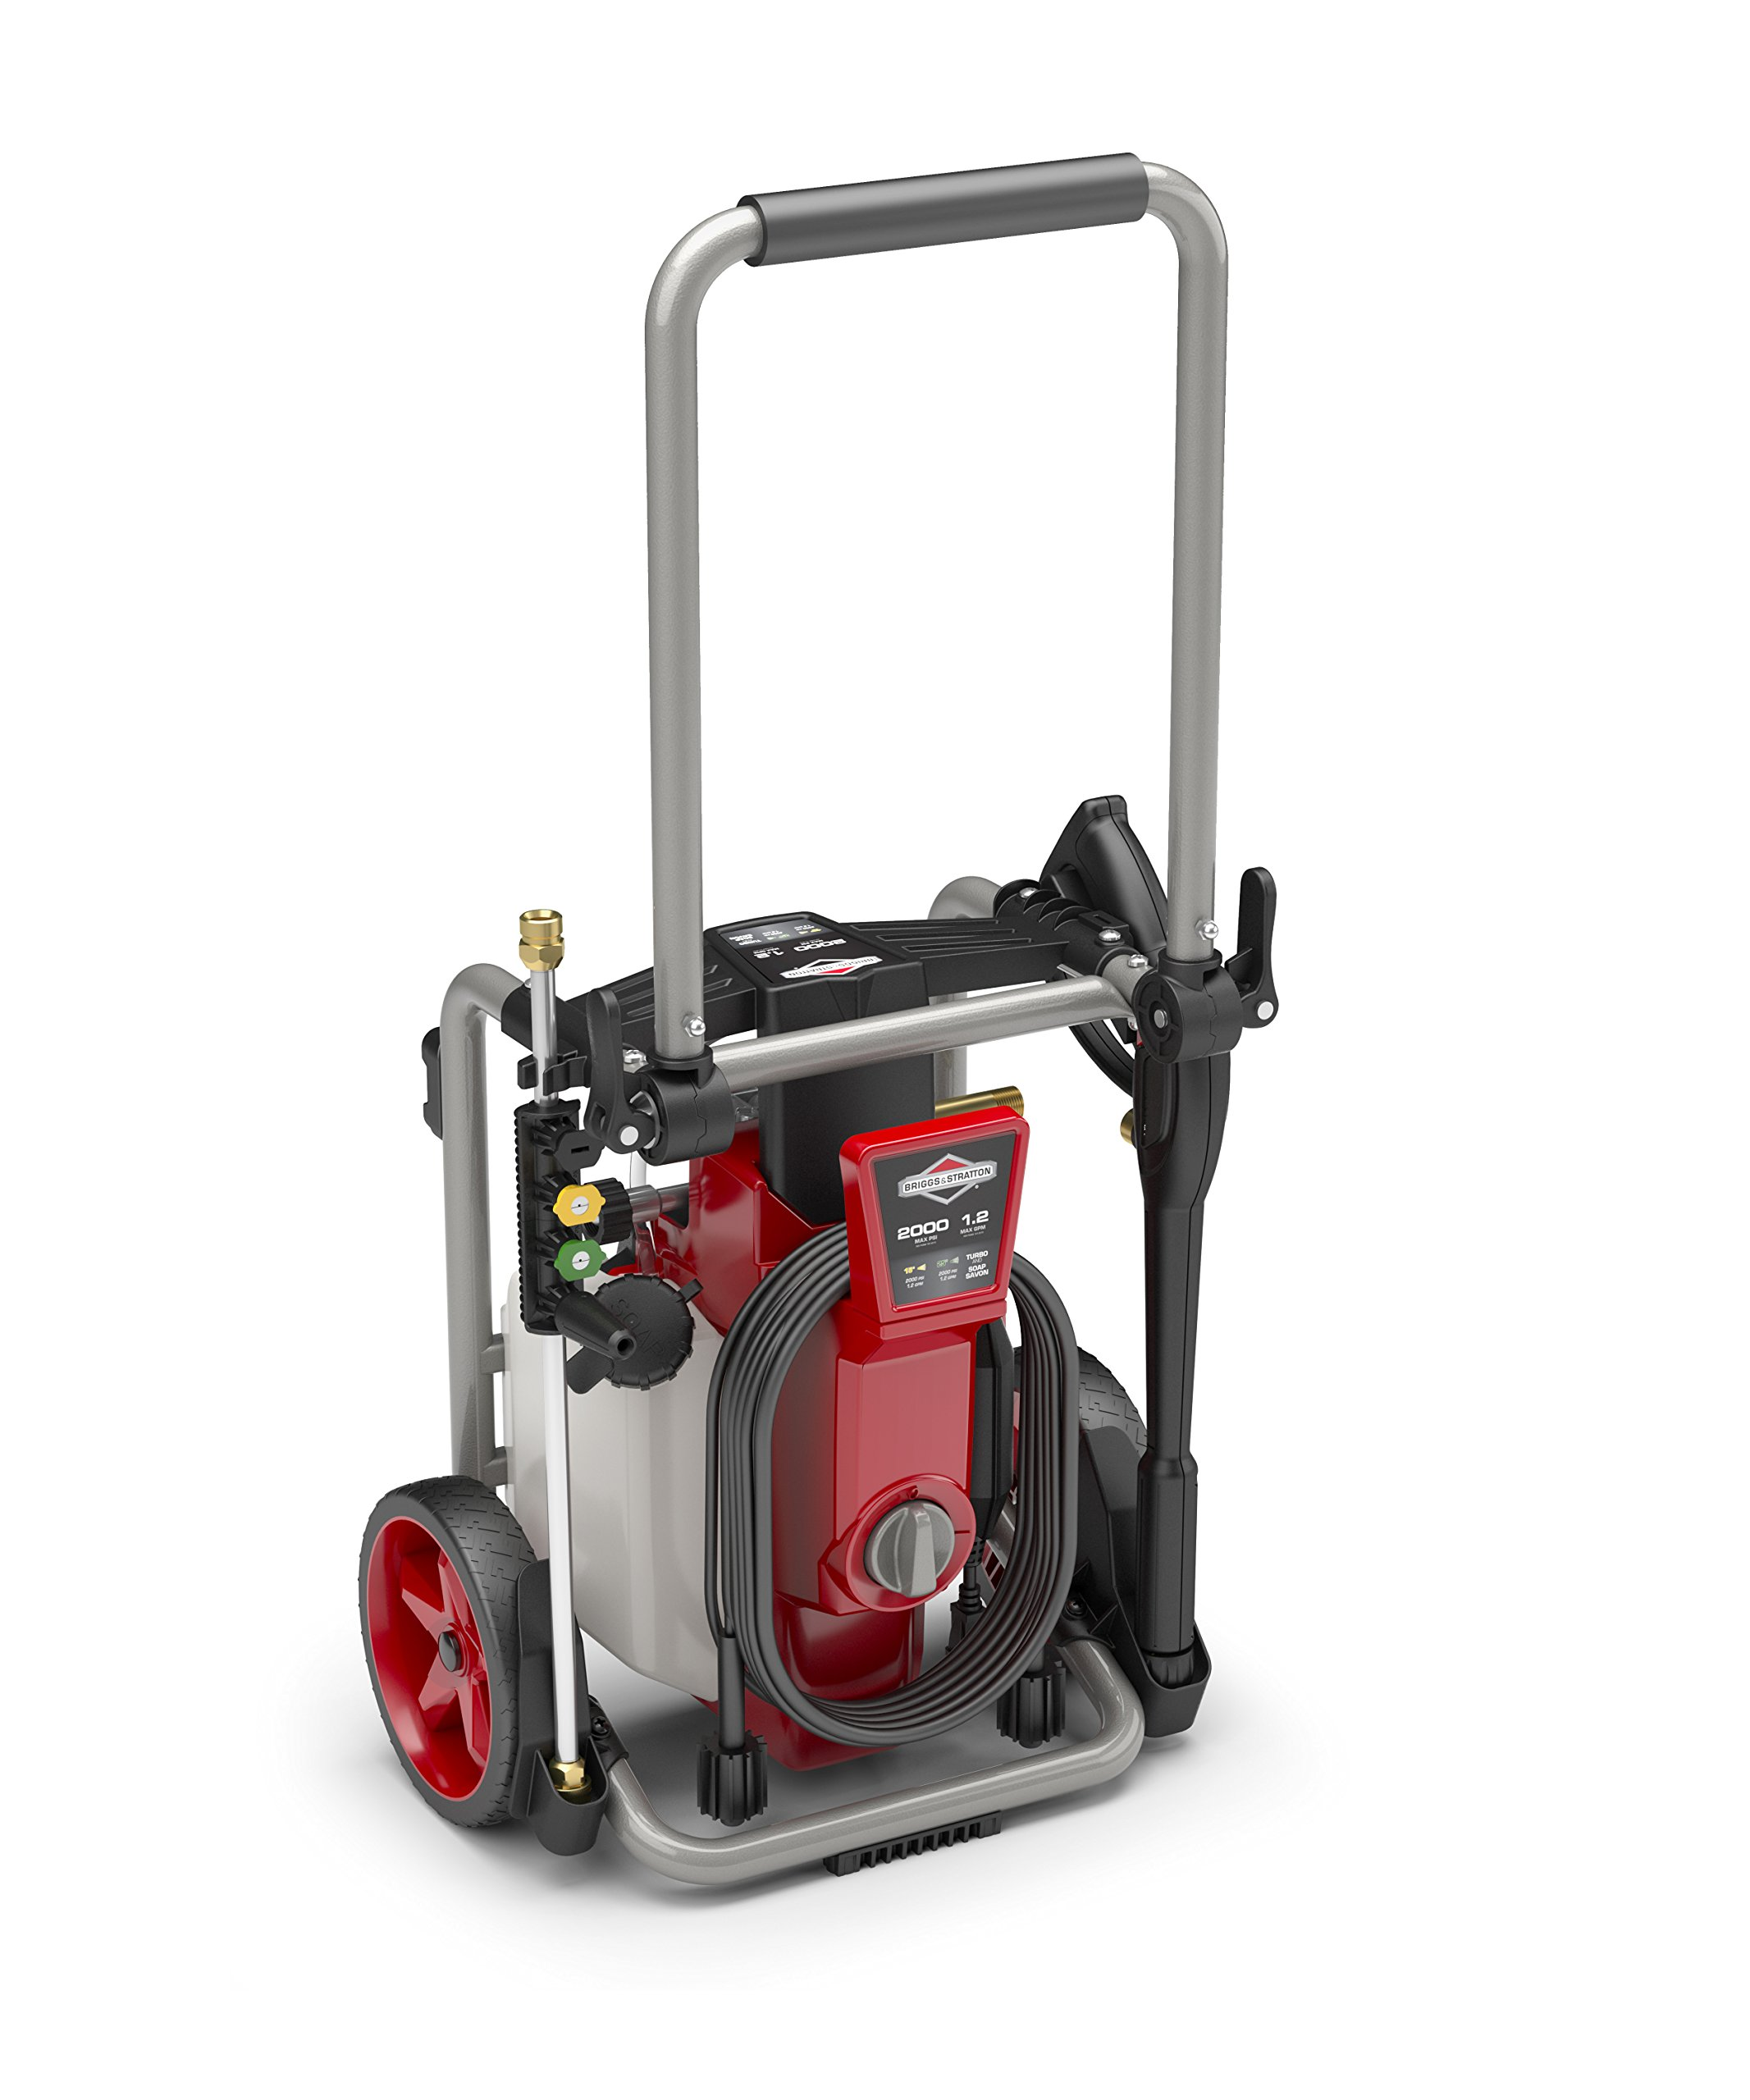 Briggs & Stratton 020681 Electric Pressure Washer 2000 PSI 1.2 GPM with 25-Foot High Pressure Hose, 4 Nozzles & Detergent Tank